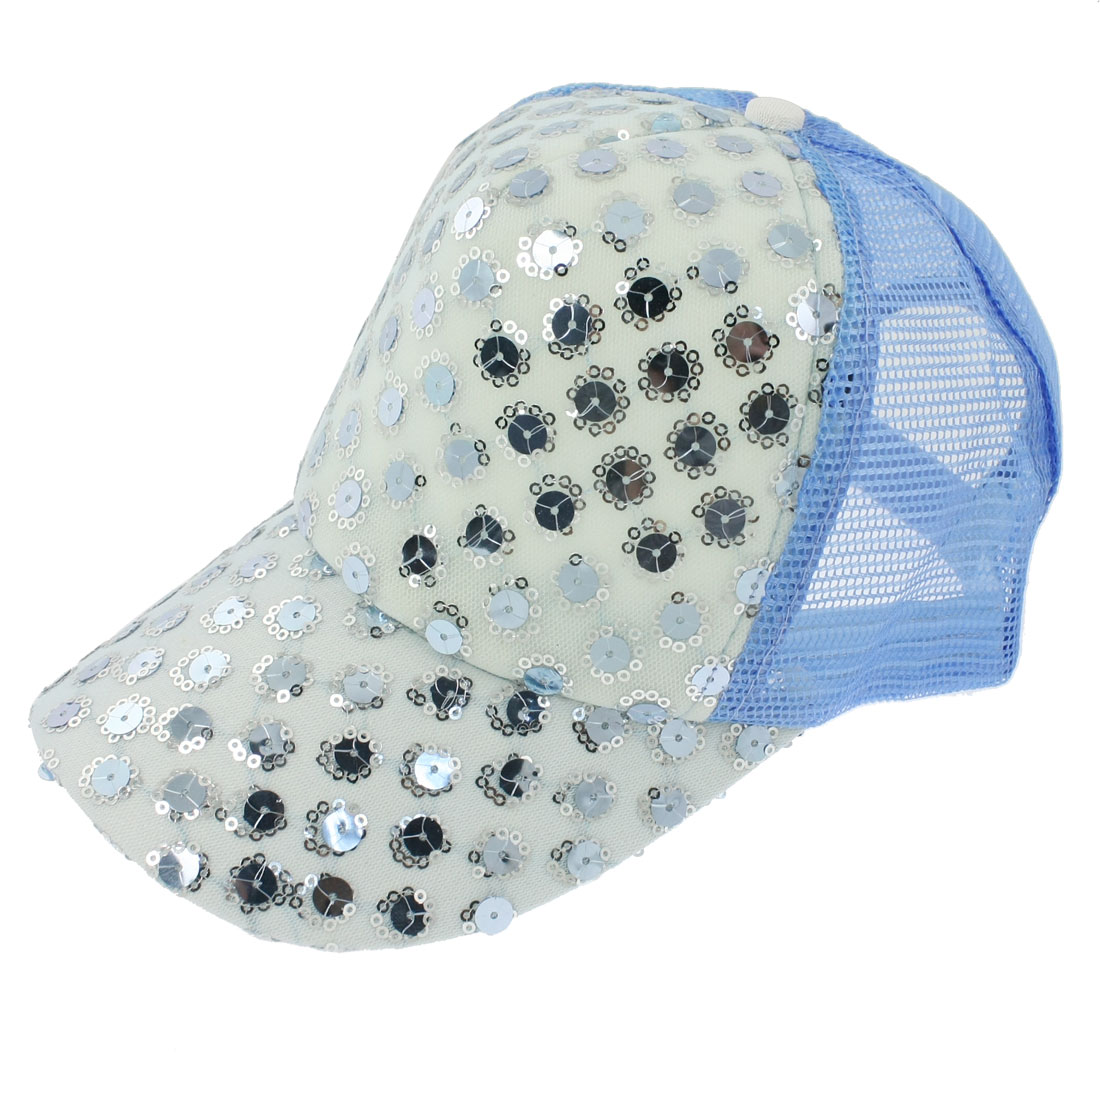 Light Blue Mesh Glittery Adjustable Summer Sun Visor Hat for Lady